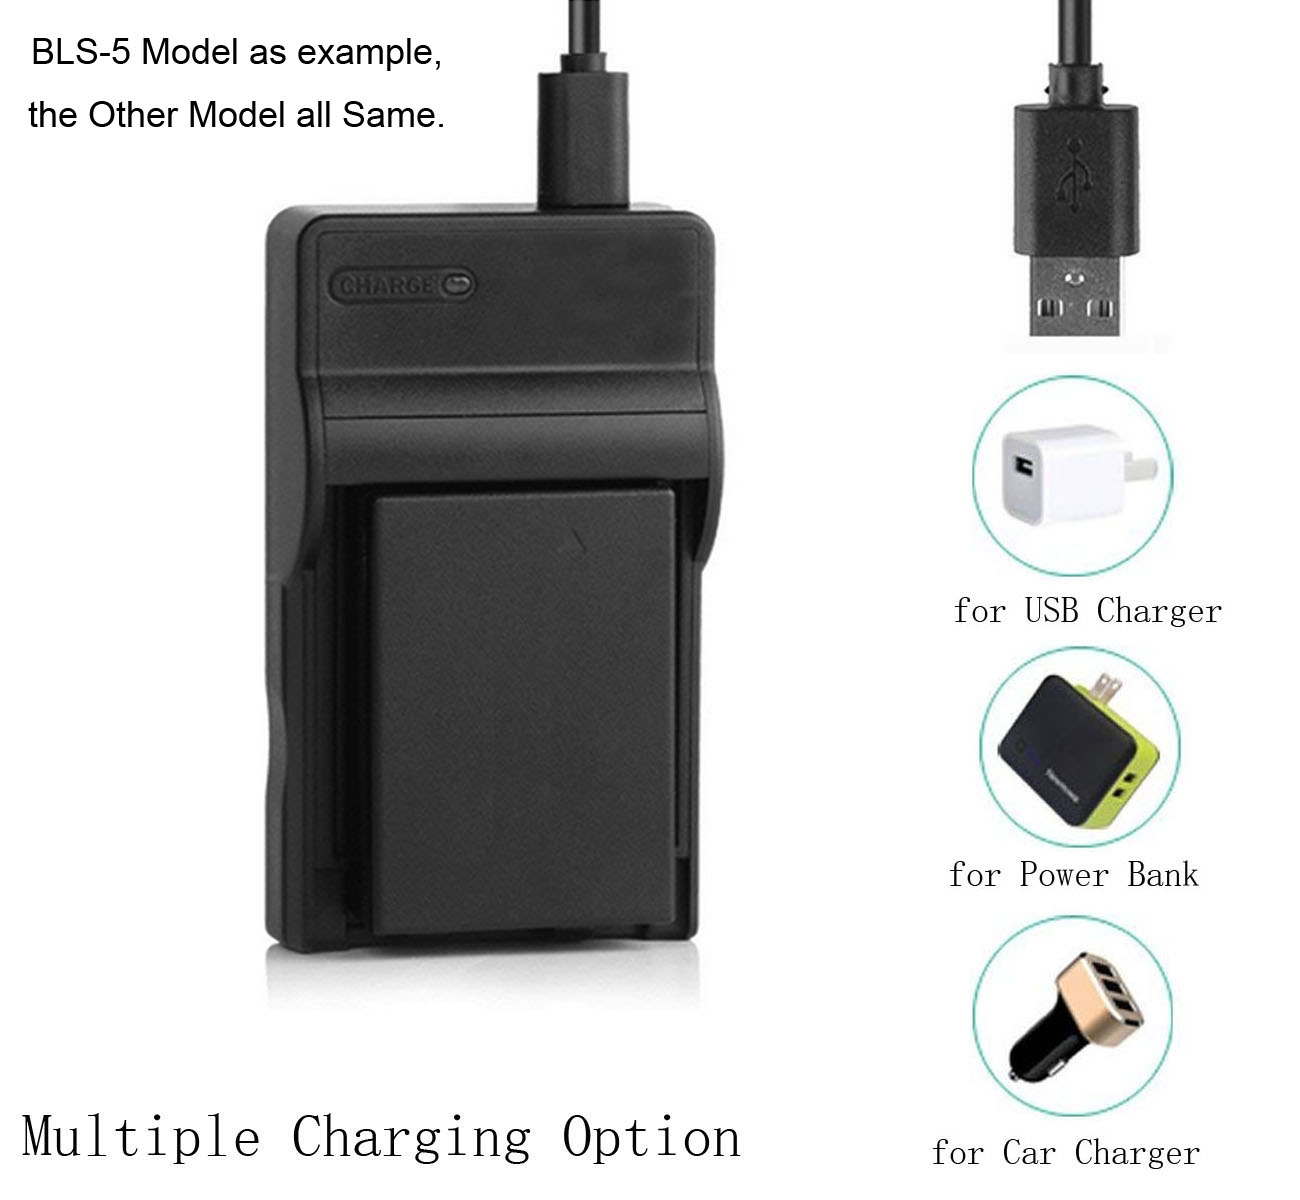 GZ-MG26EY GZ-MG26EX GZ-MG26EZ Digital Camcorder Battery Charger for JVC Everio GZ-MG26AA